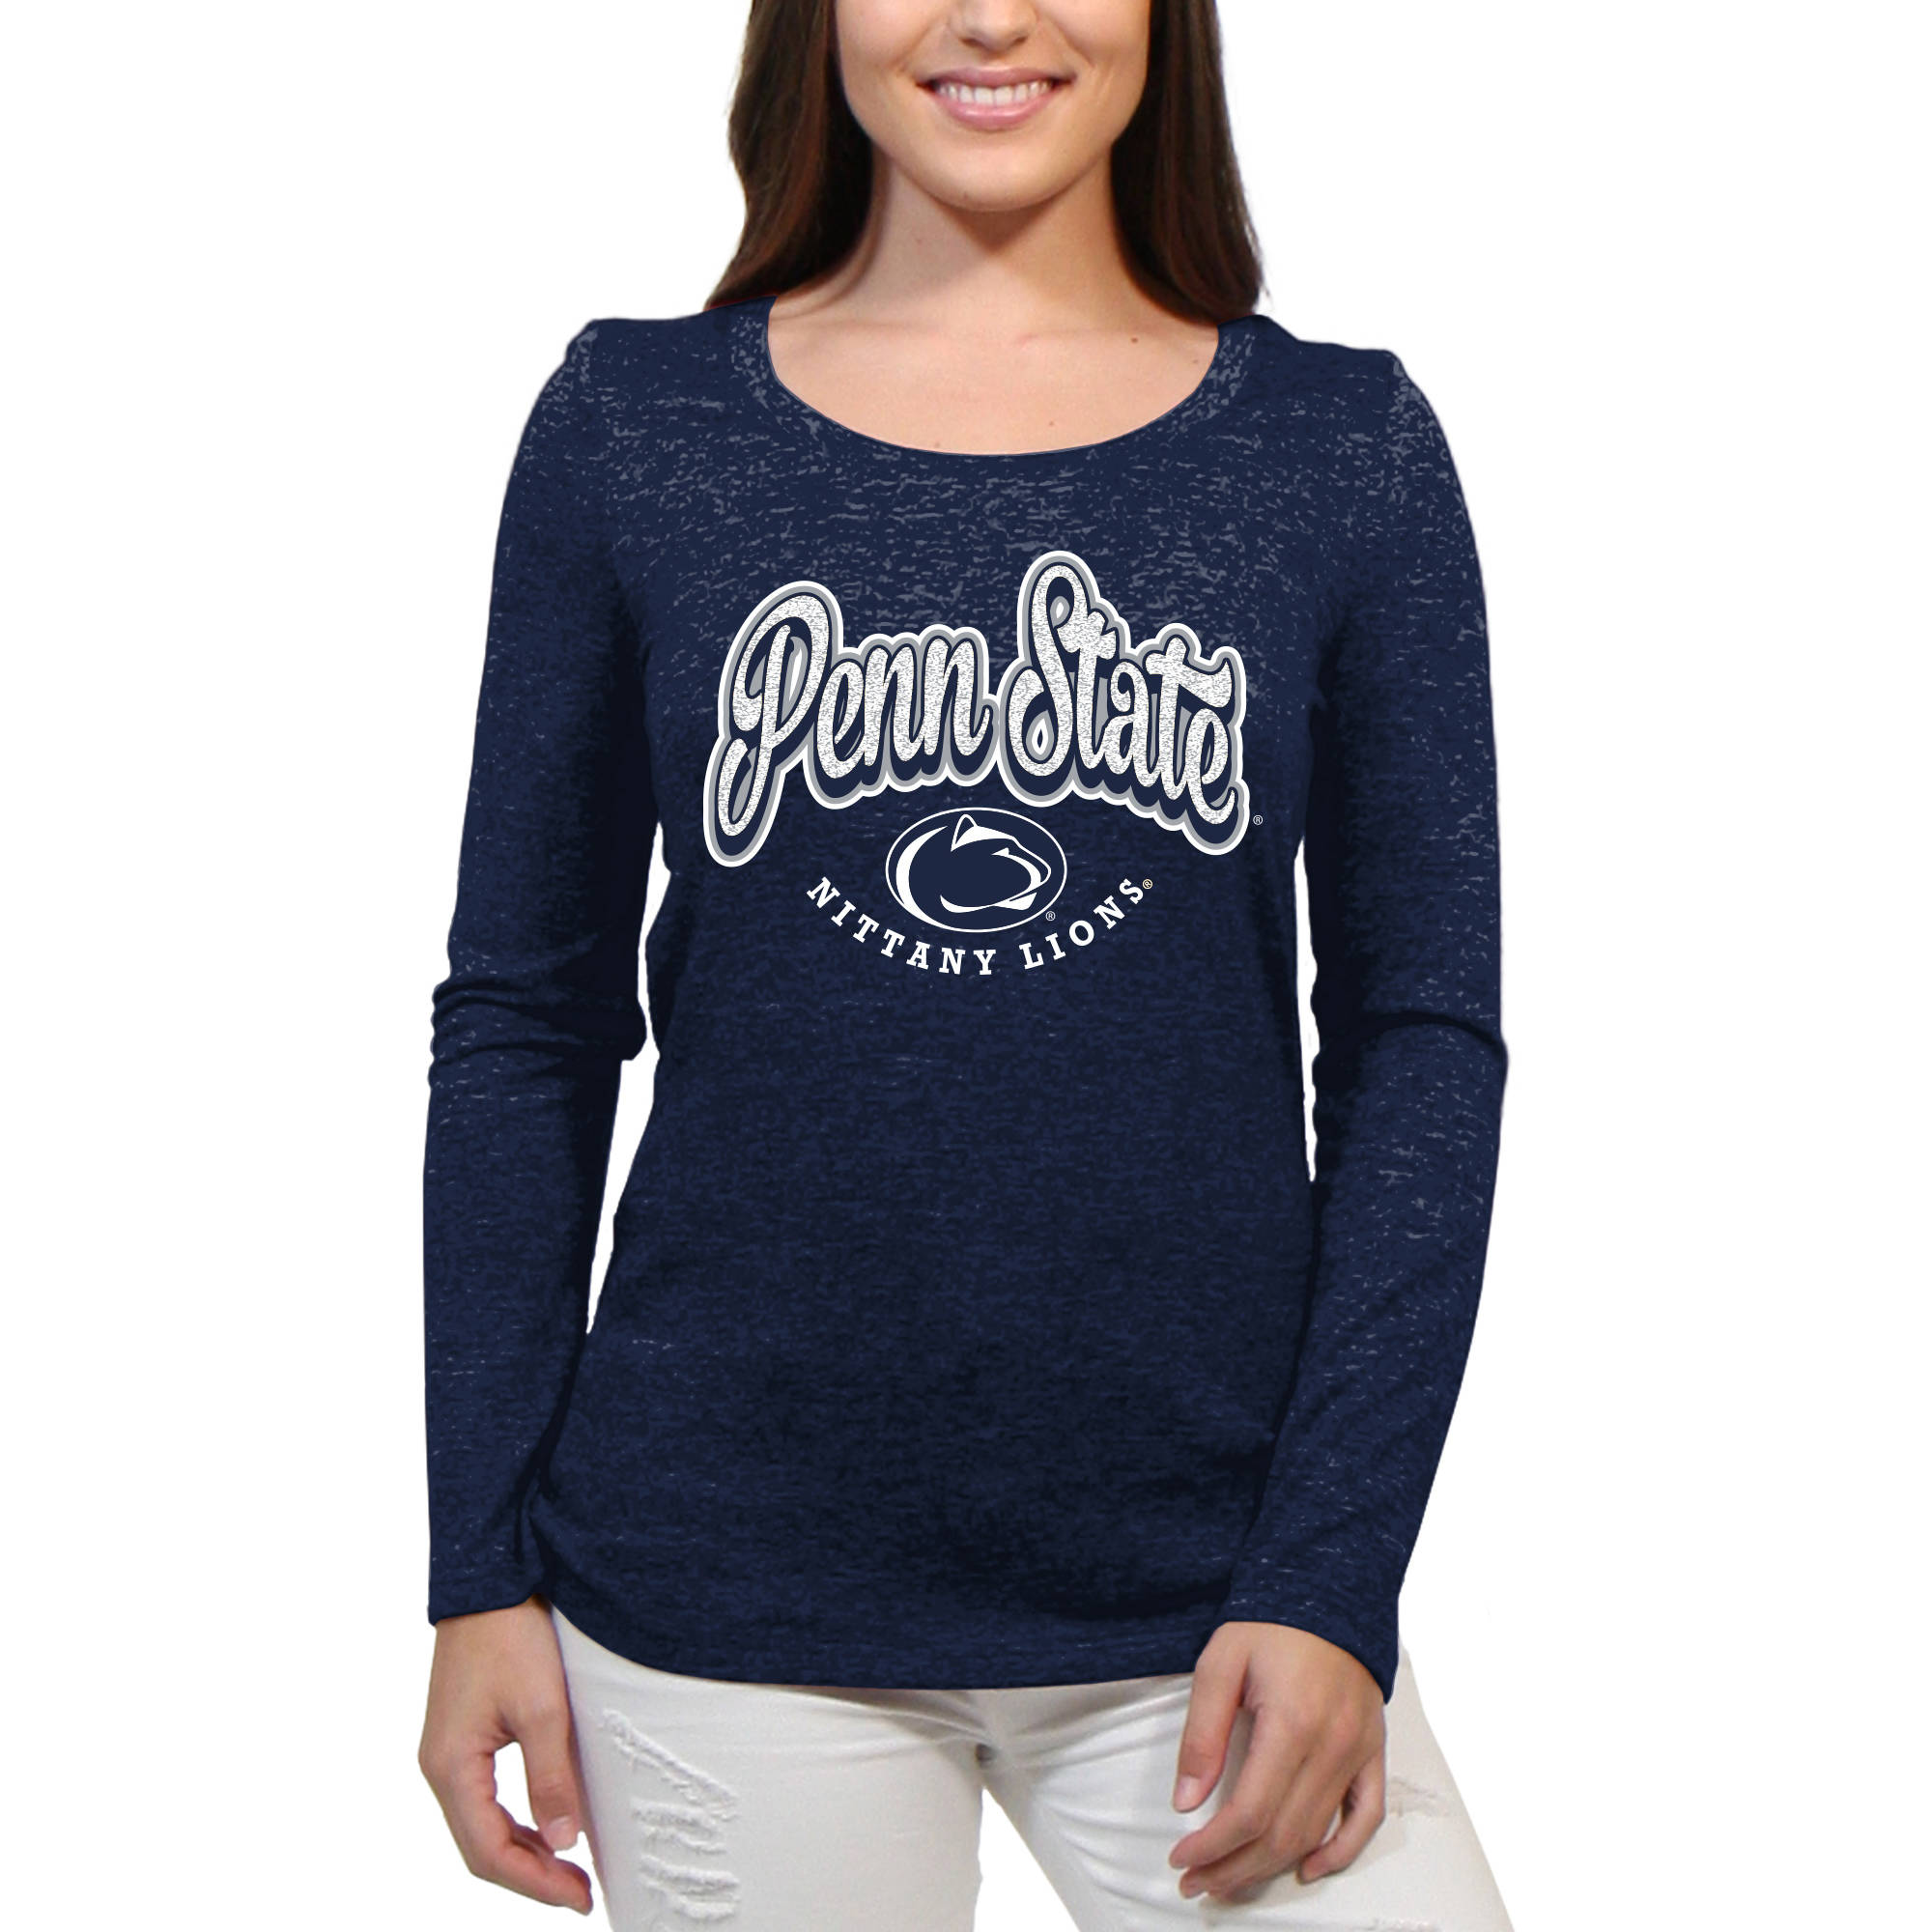 Penn State Nittany Lions Funky Script Women'S/Juniors Team Long Sleeve Scoop Neck Shirt